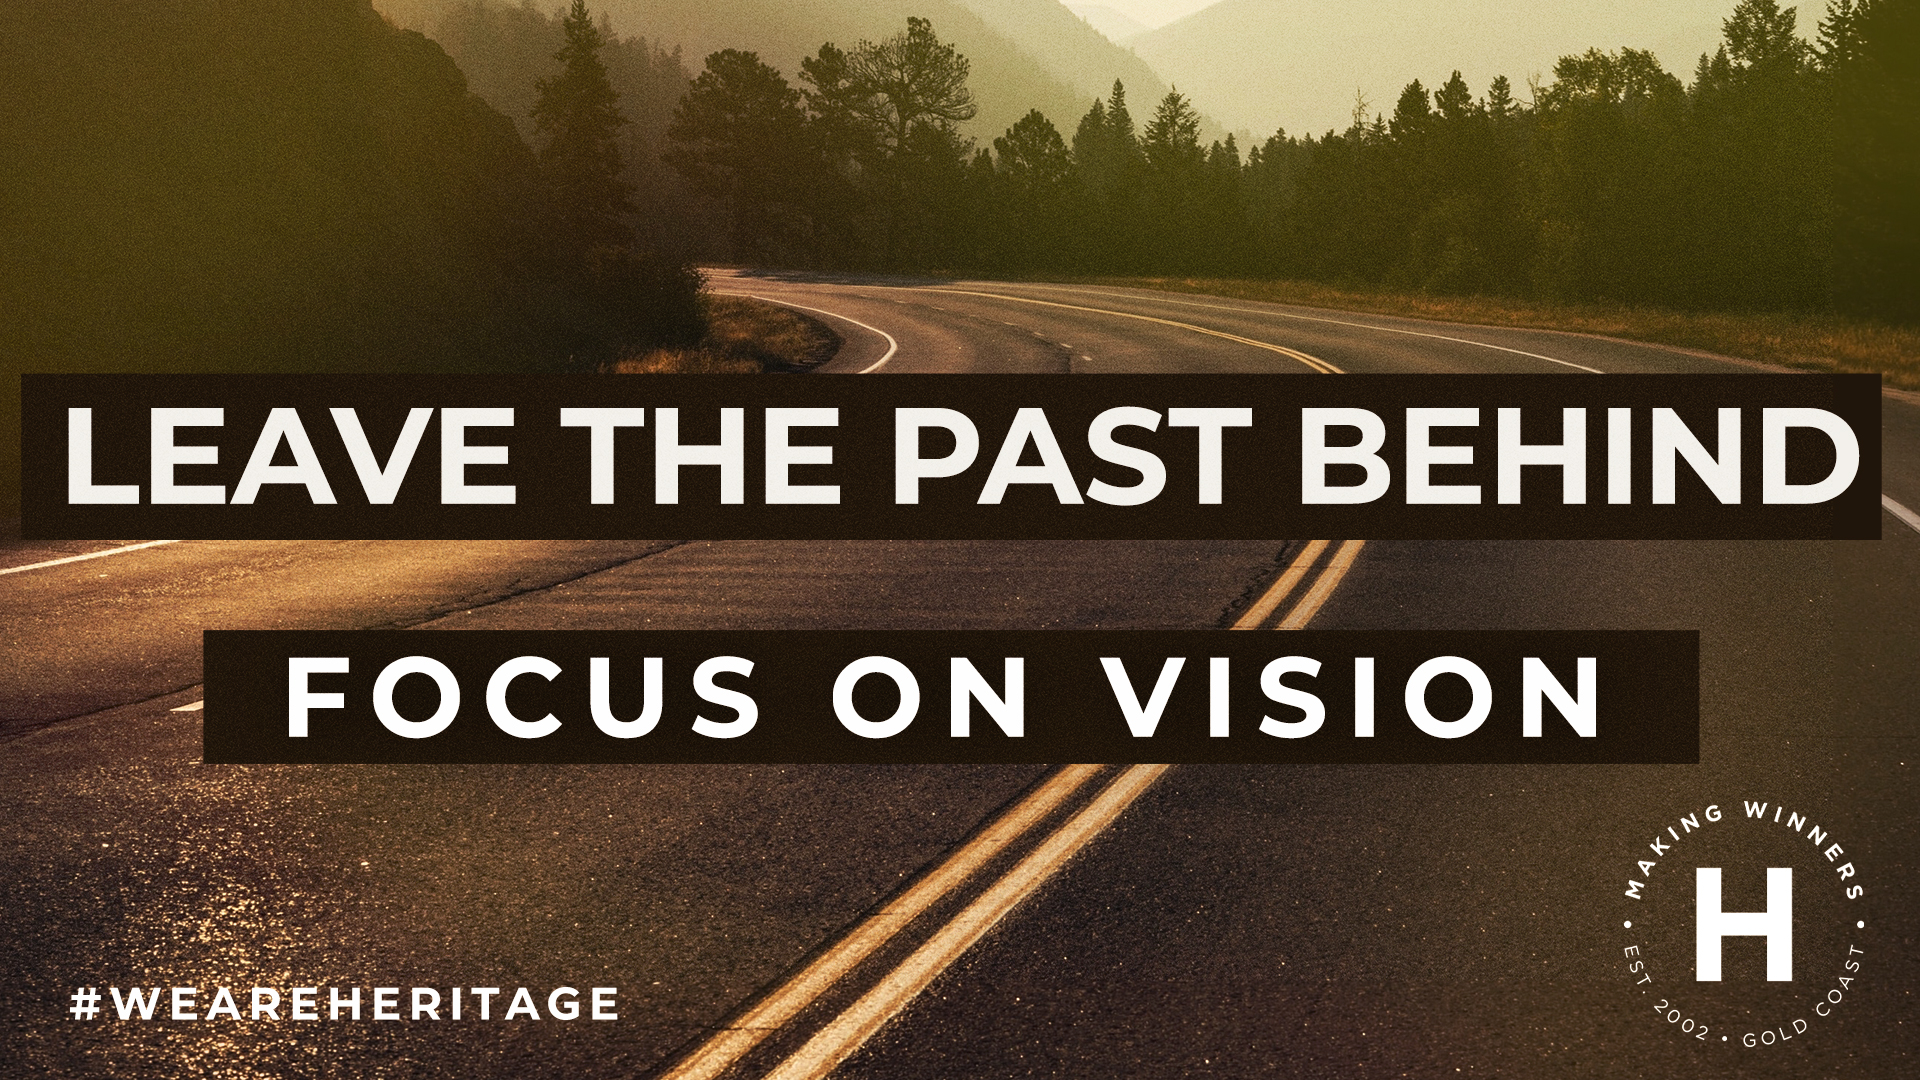 Leave the past behind Focus on vision